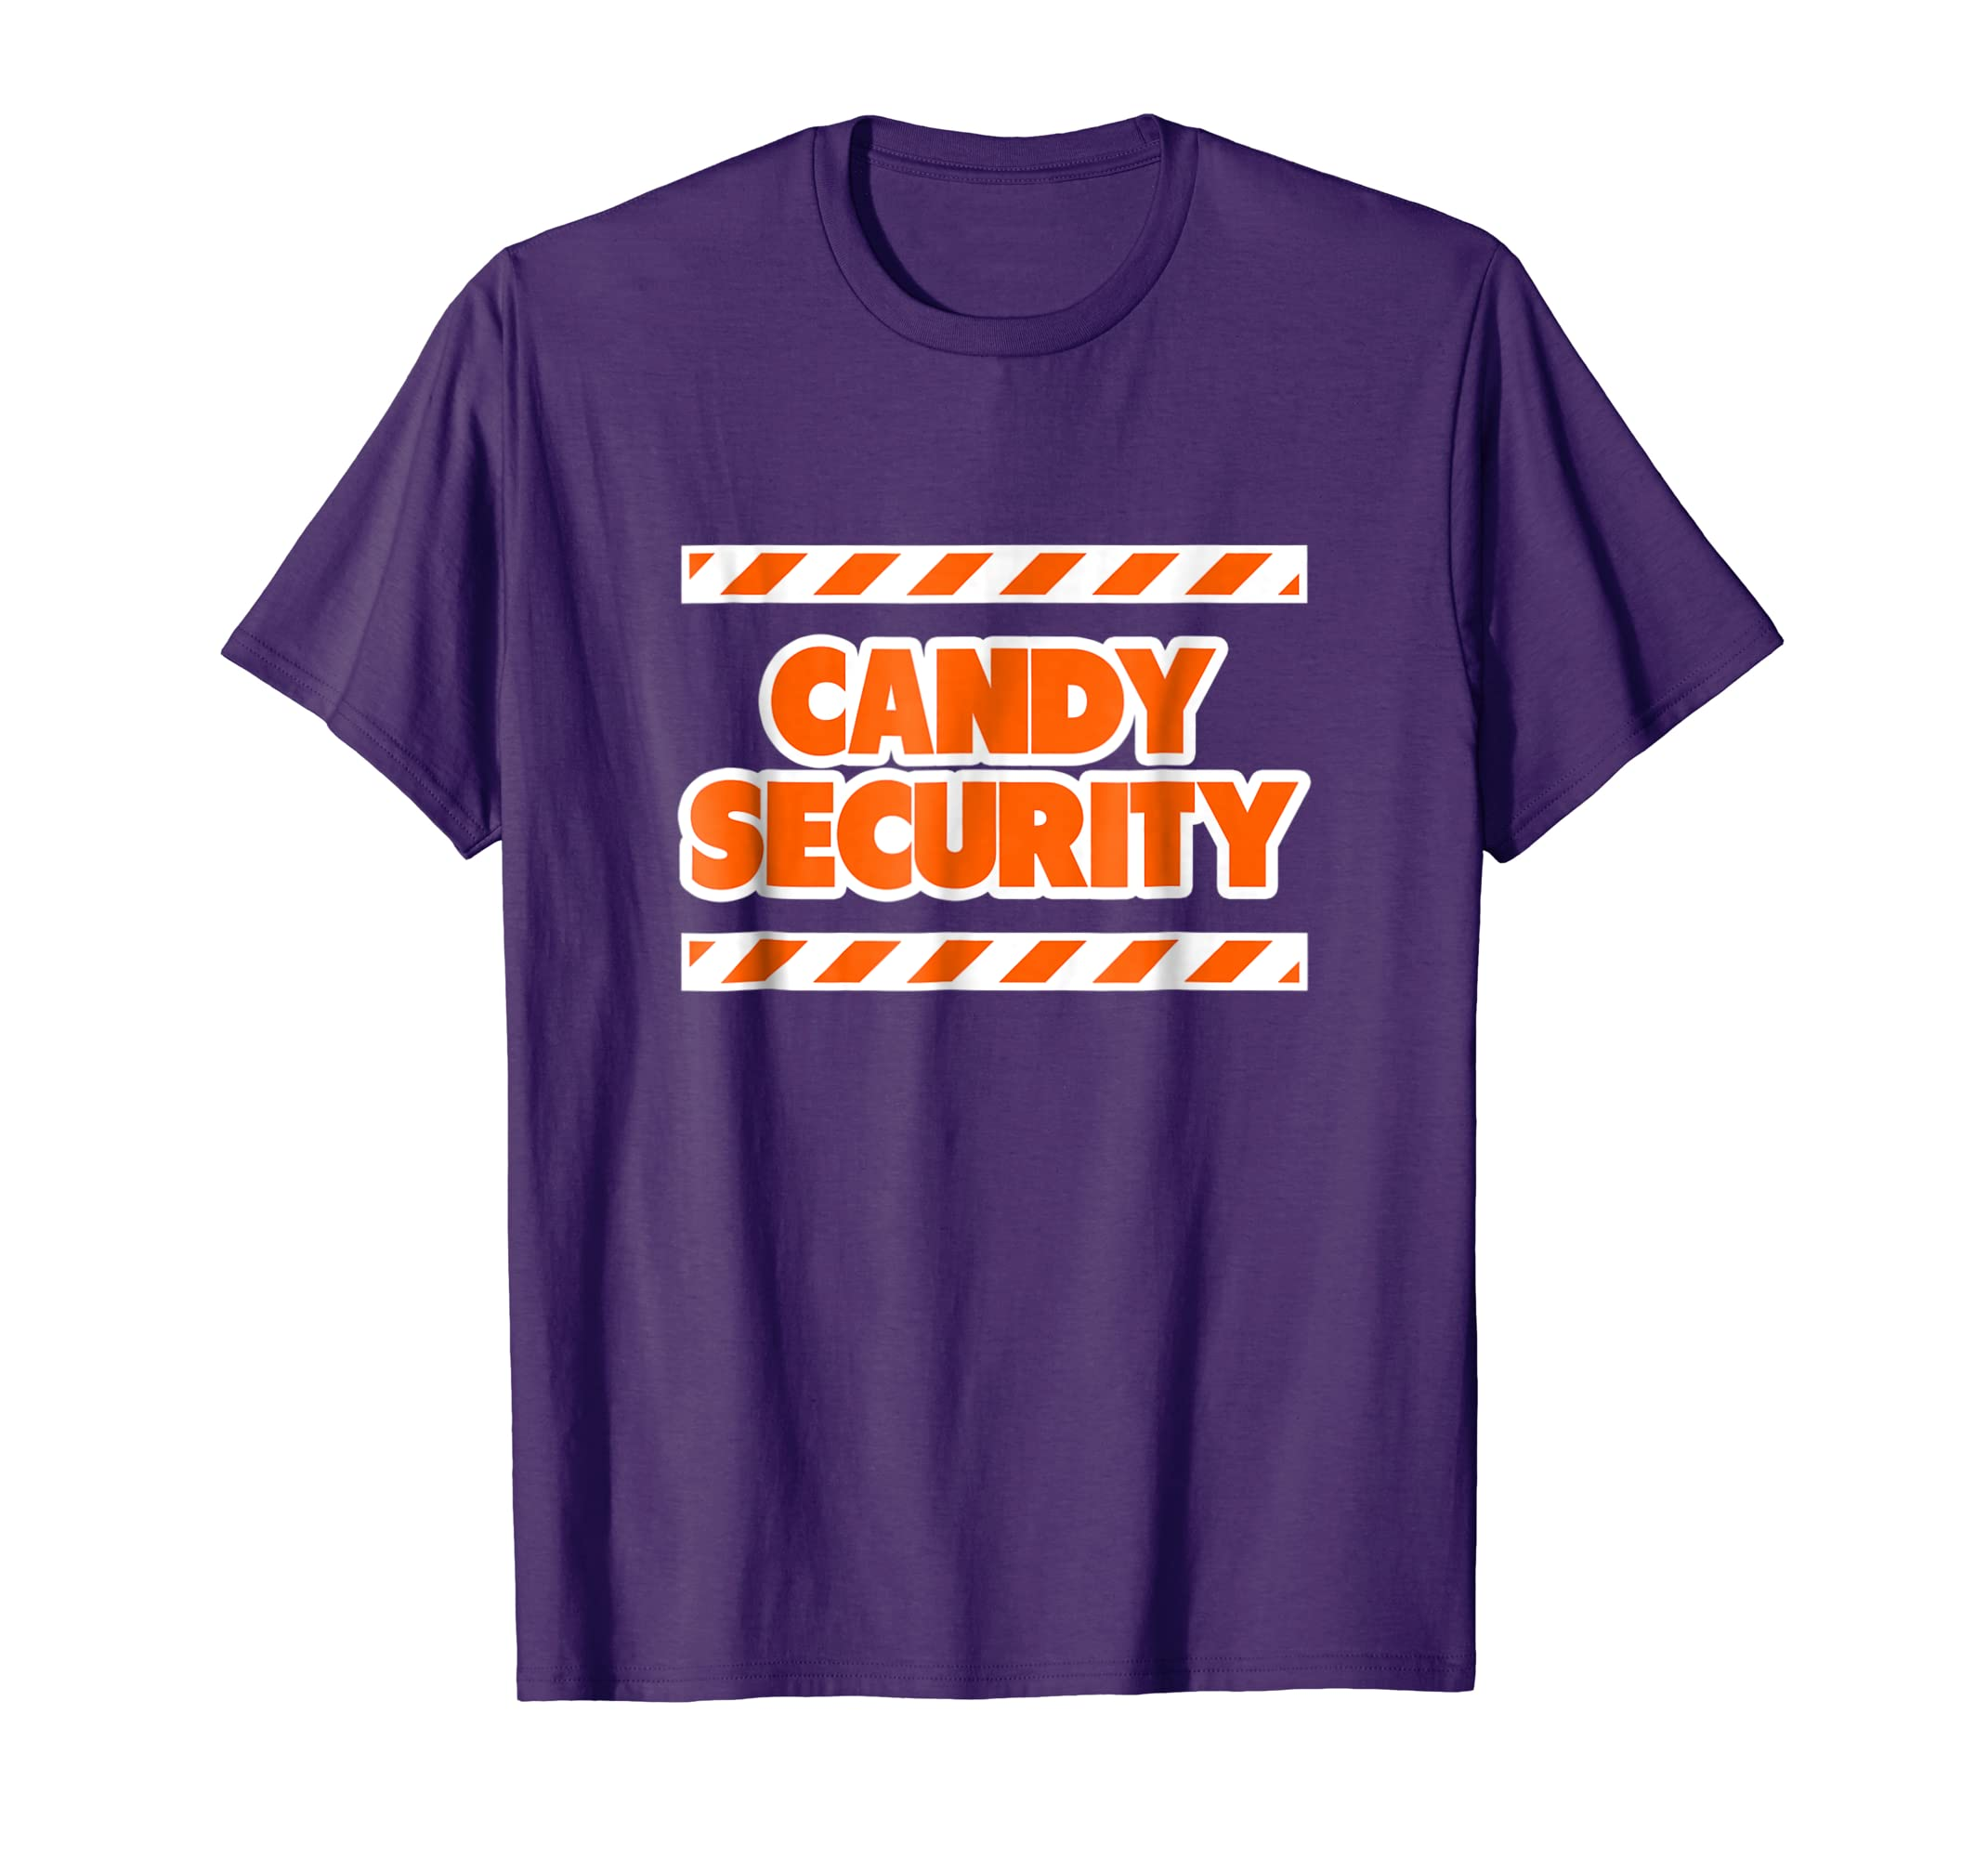 Funny Candy Security Halloween Shirts for Mom Dad, Orange-azvn